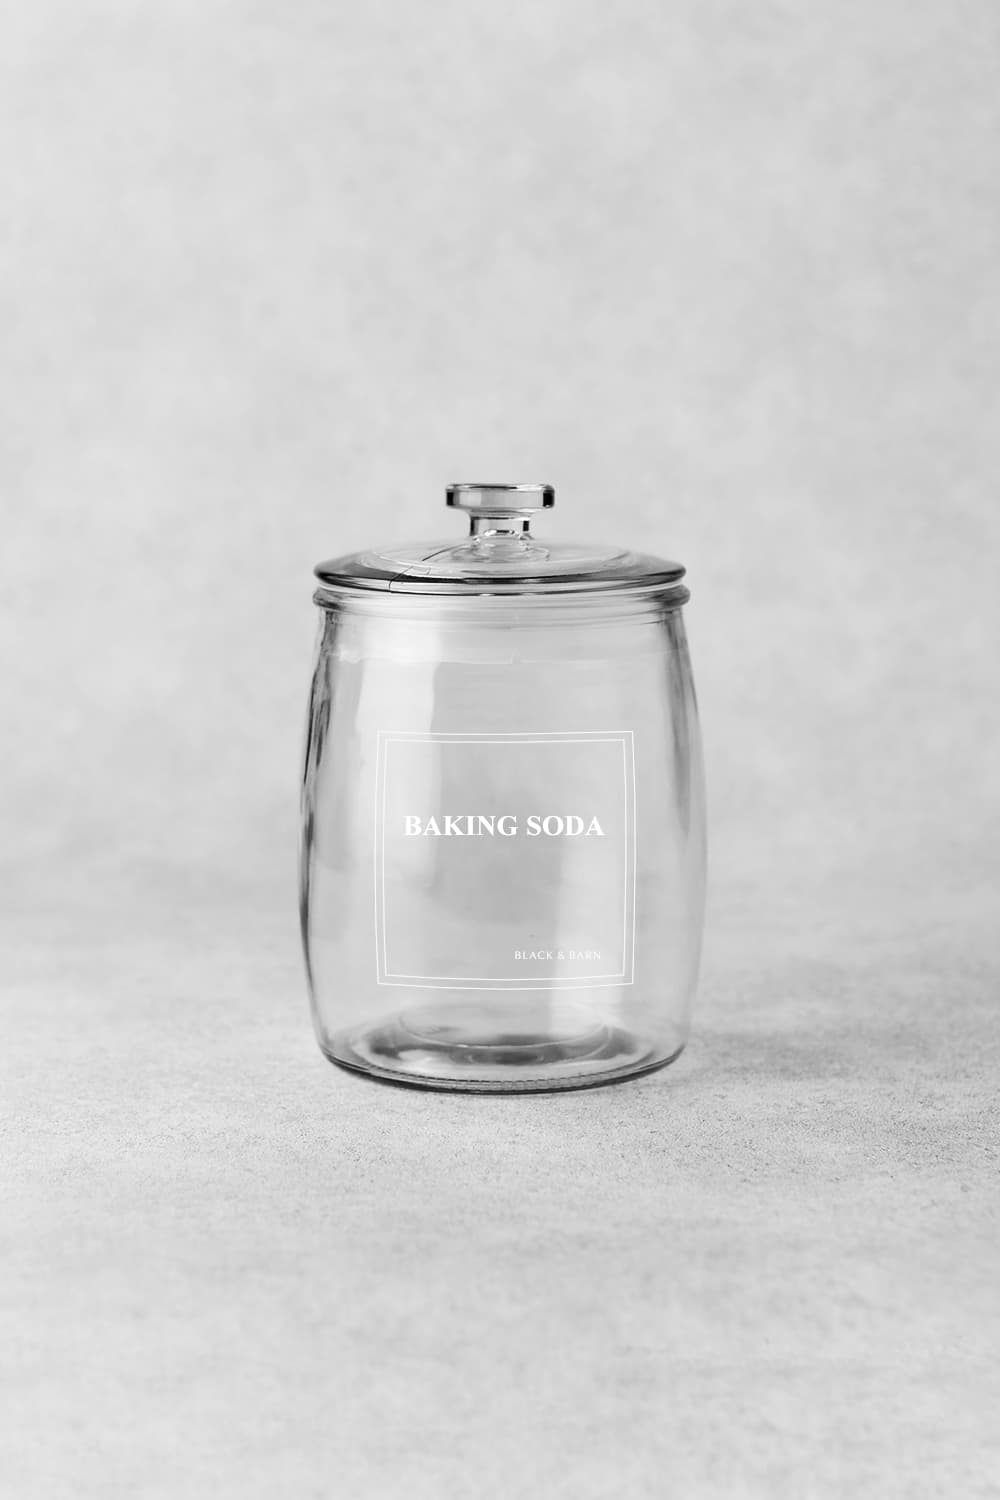 Baking Jars with white engraved label